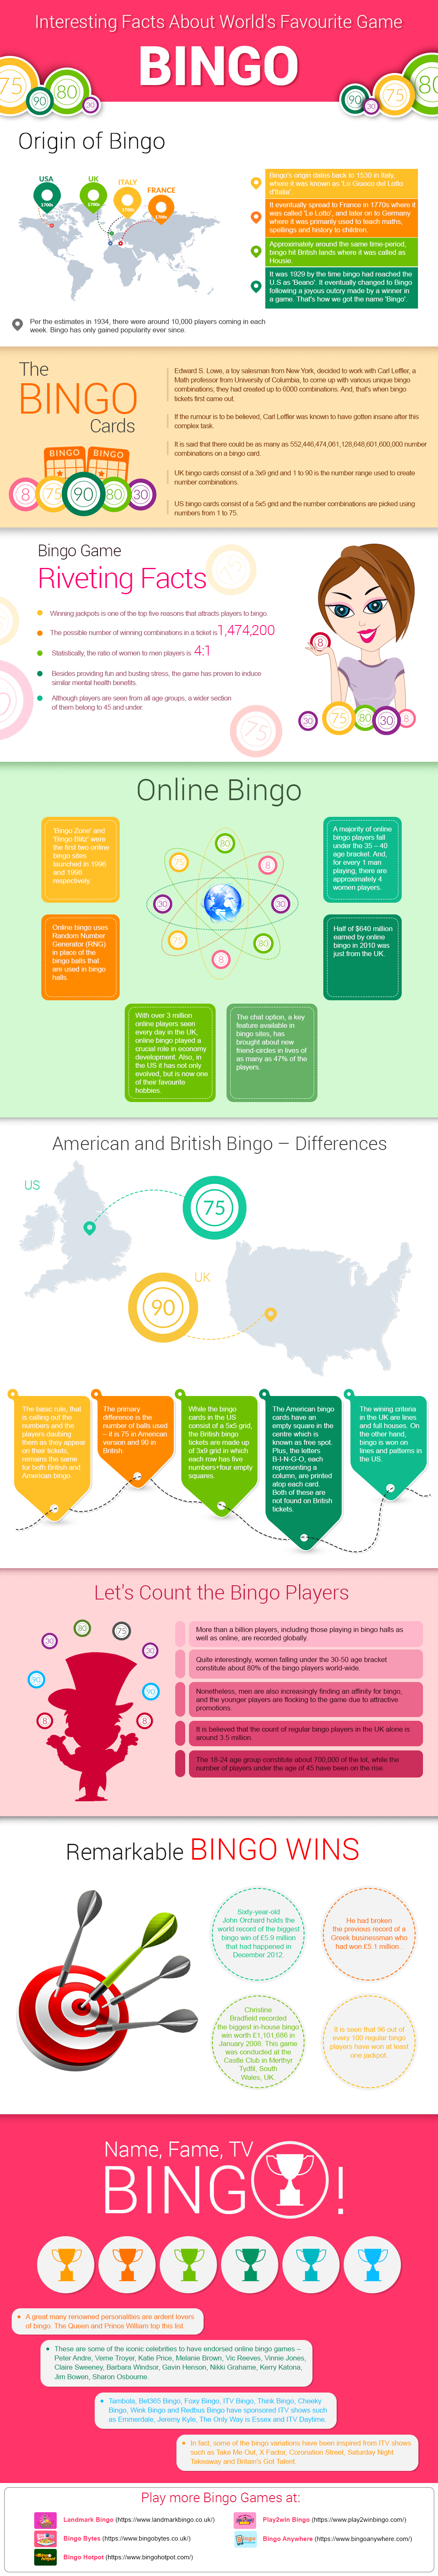 Interesting Facts About Bingo